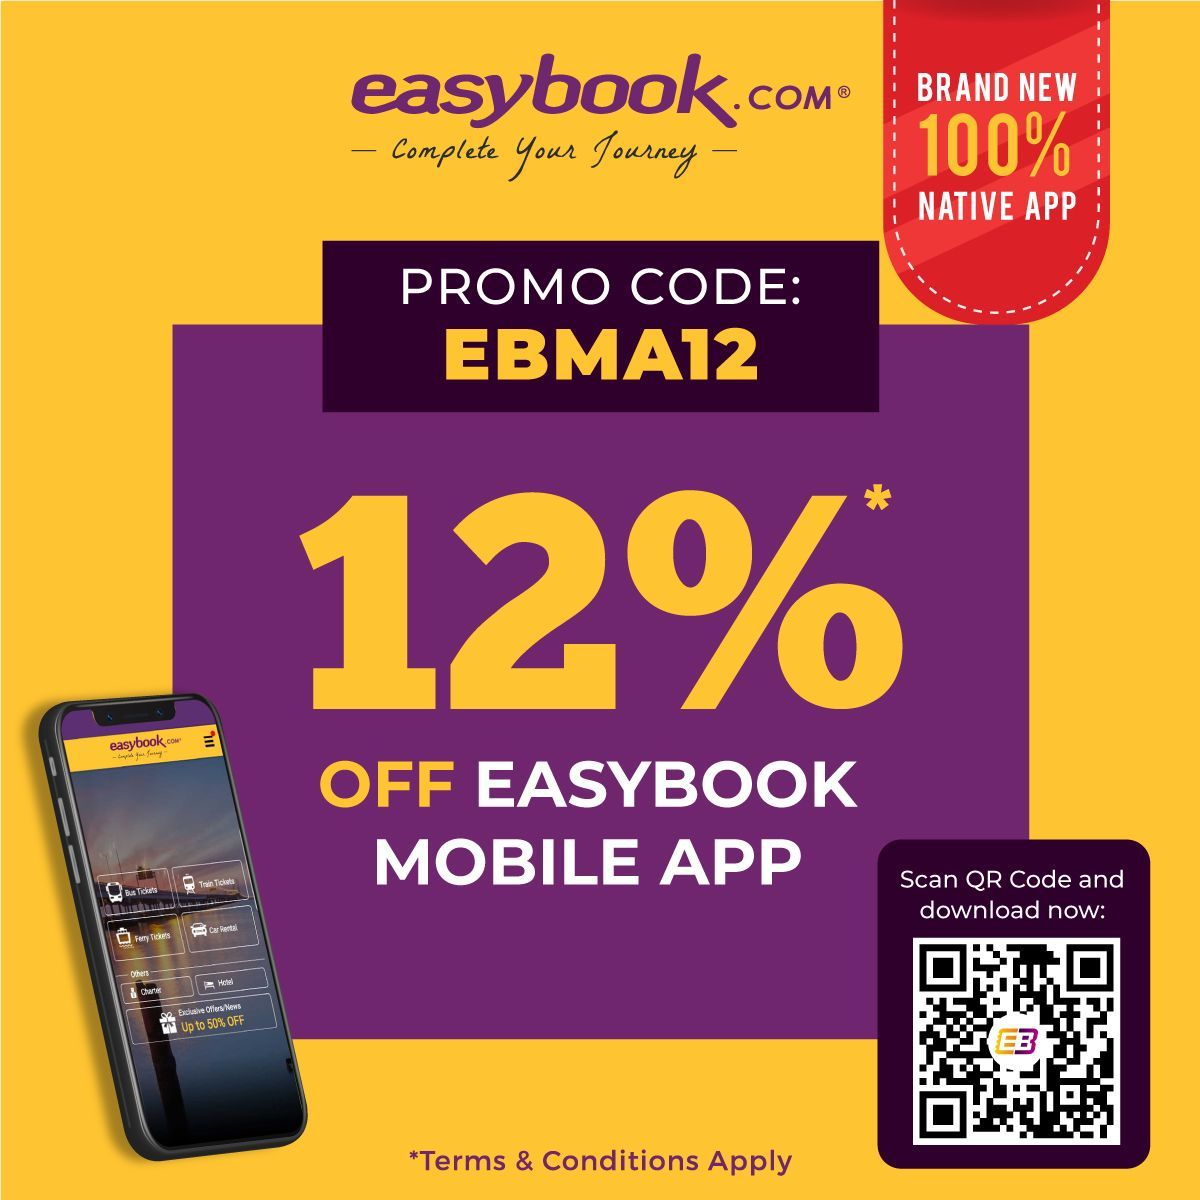 Pin by on Easybook Deals in 2019 Mobile app